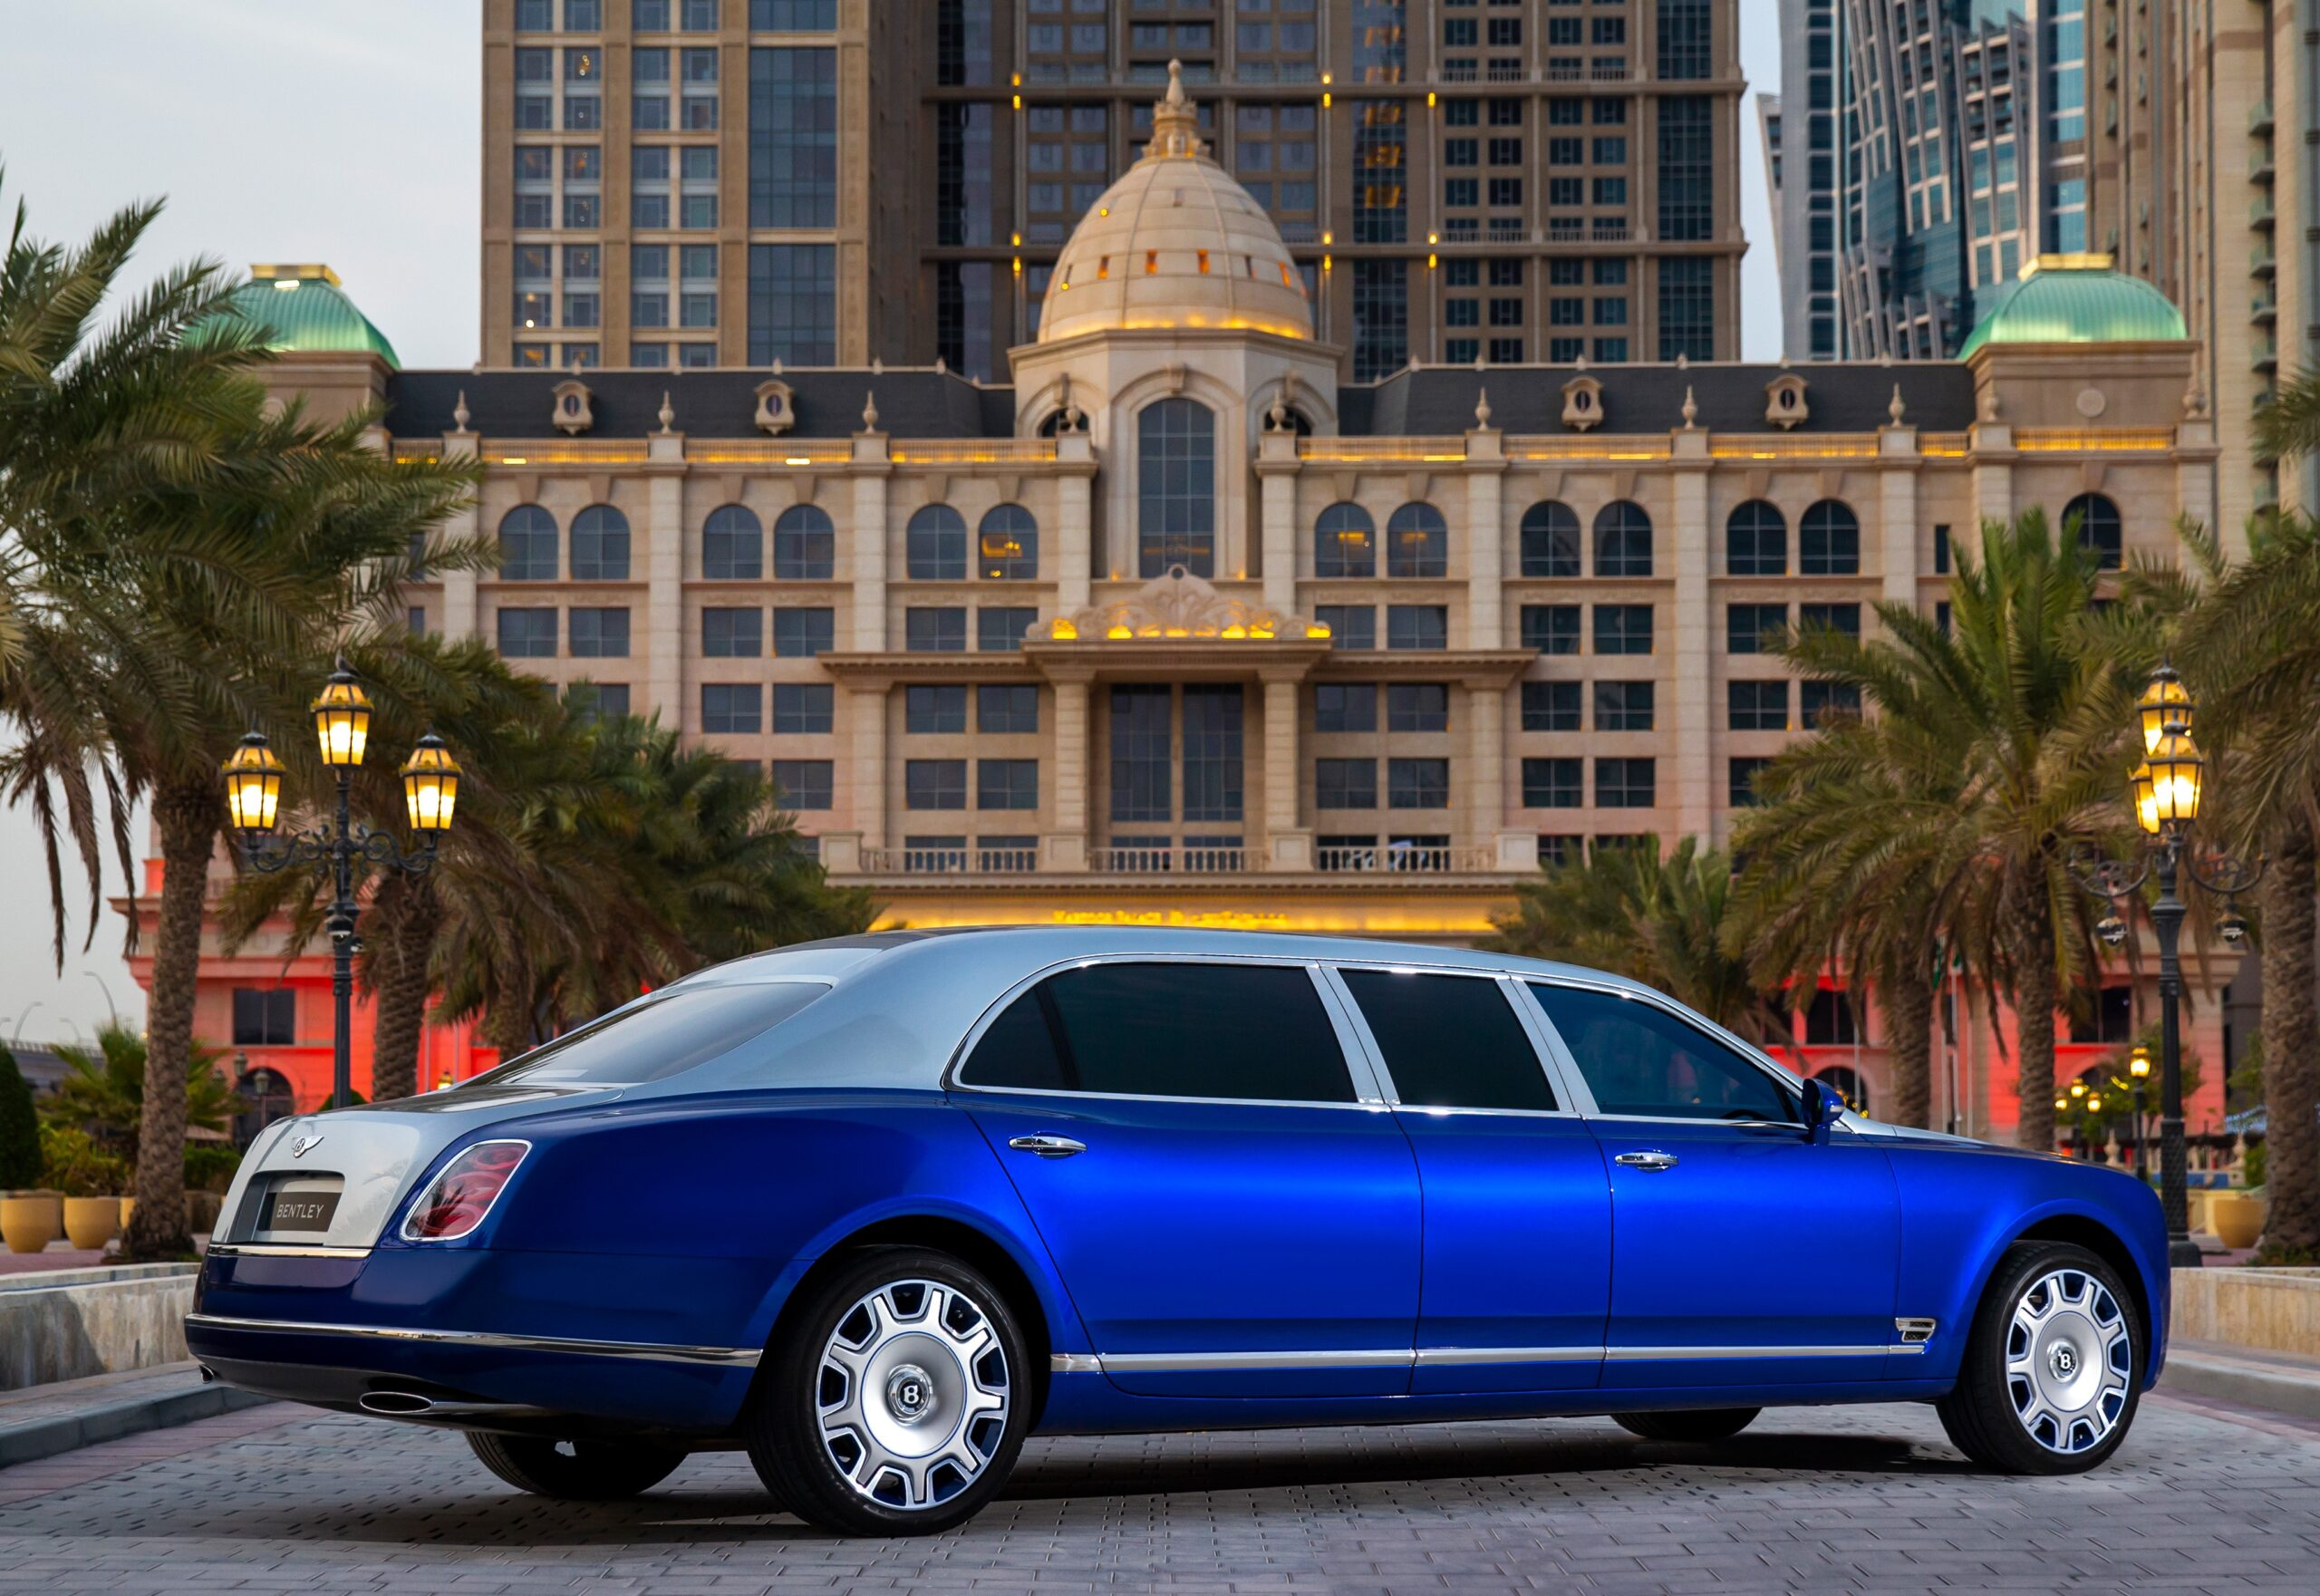 A rear view of the Bentley Grand Mulsanne